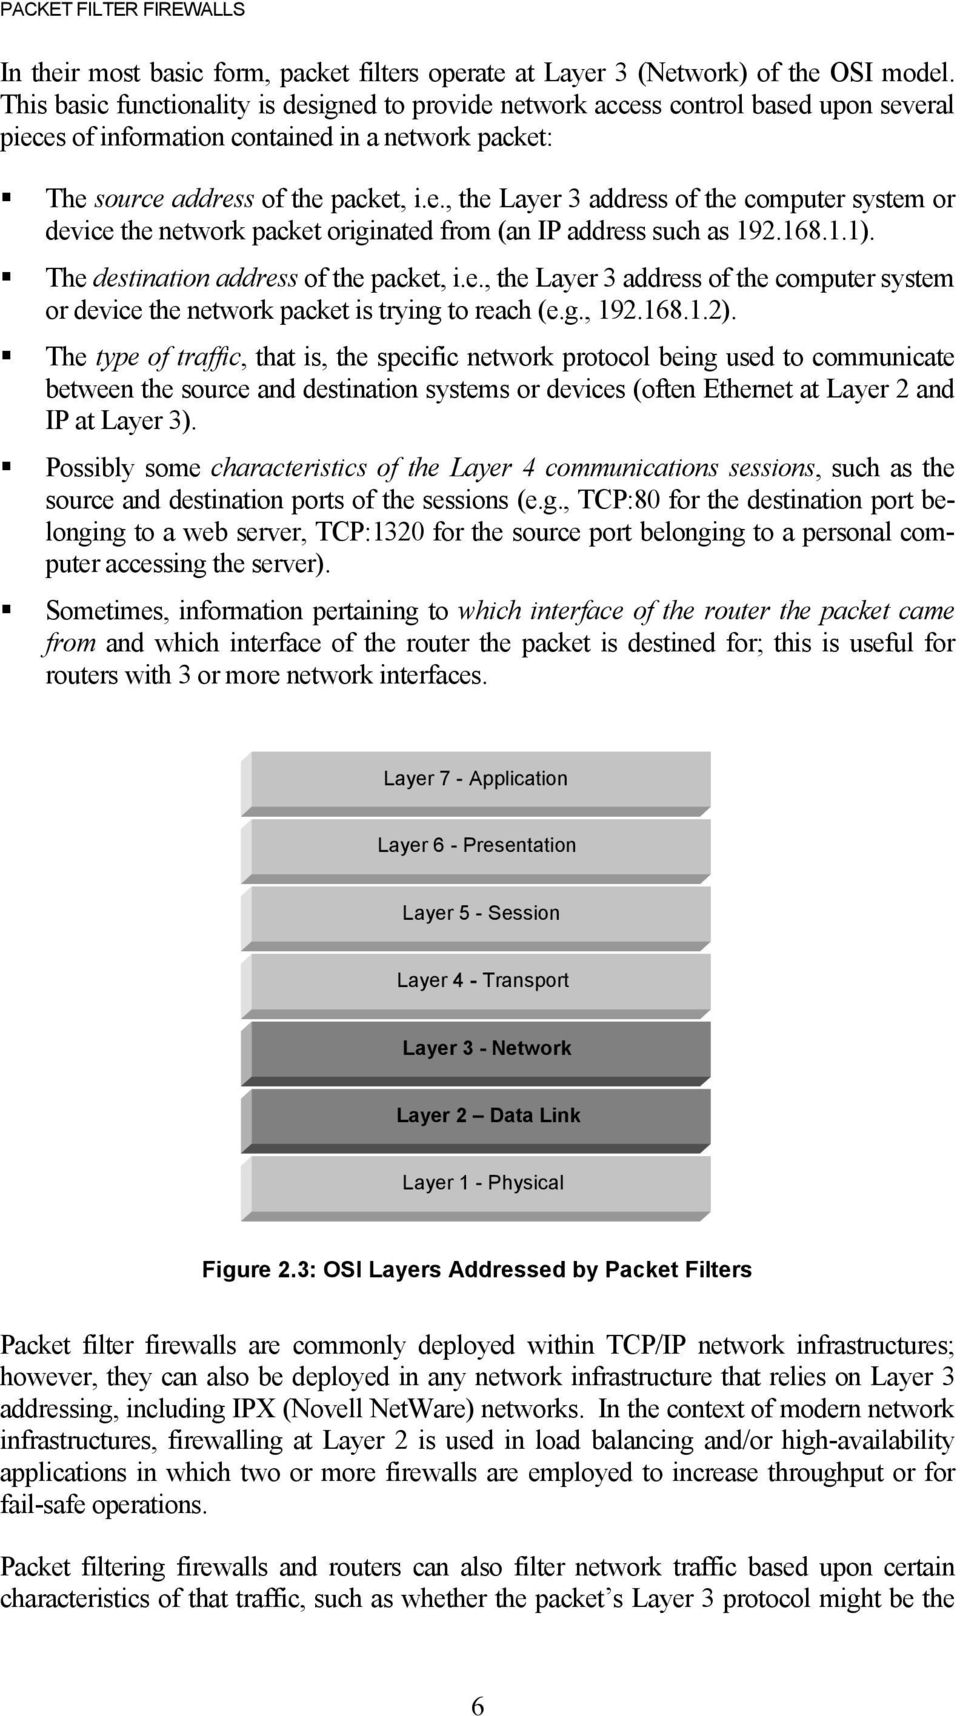 168.1.1).! The destination address of the packet, i.e., the Layer 3 address of the computer system or device the network packet is trying to reach (e.g., 192.168.1.2).